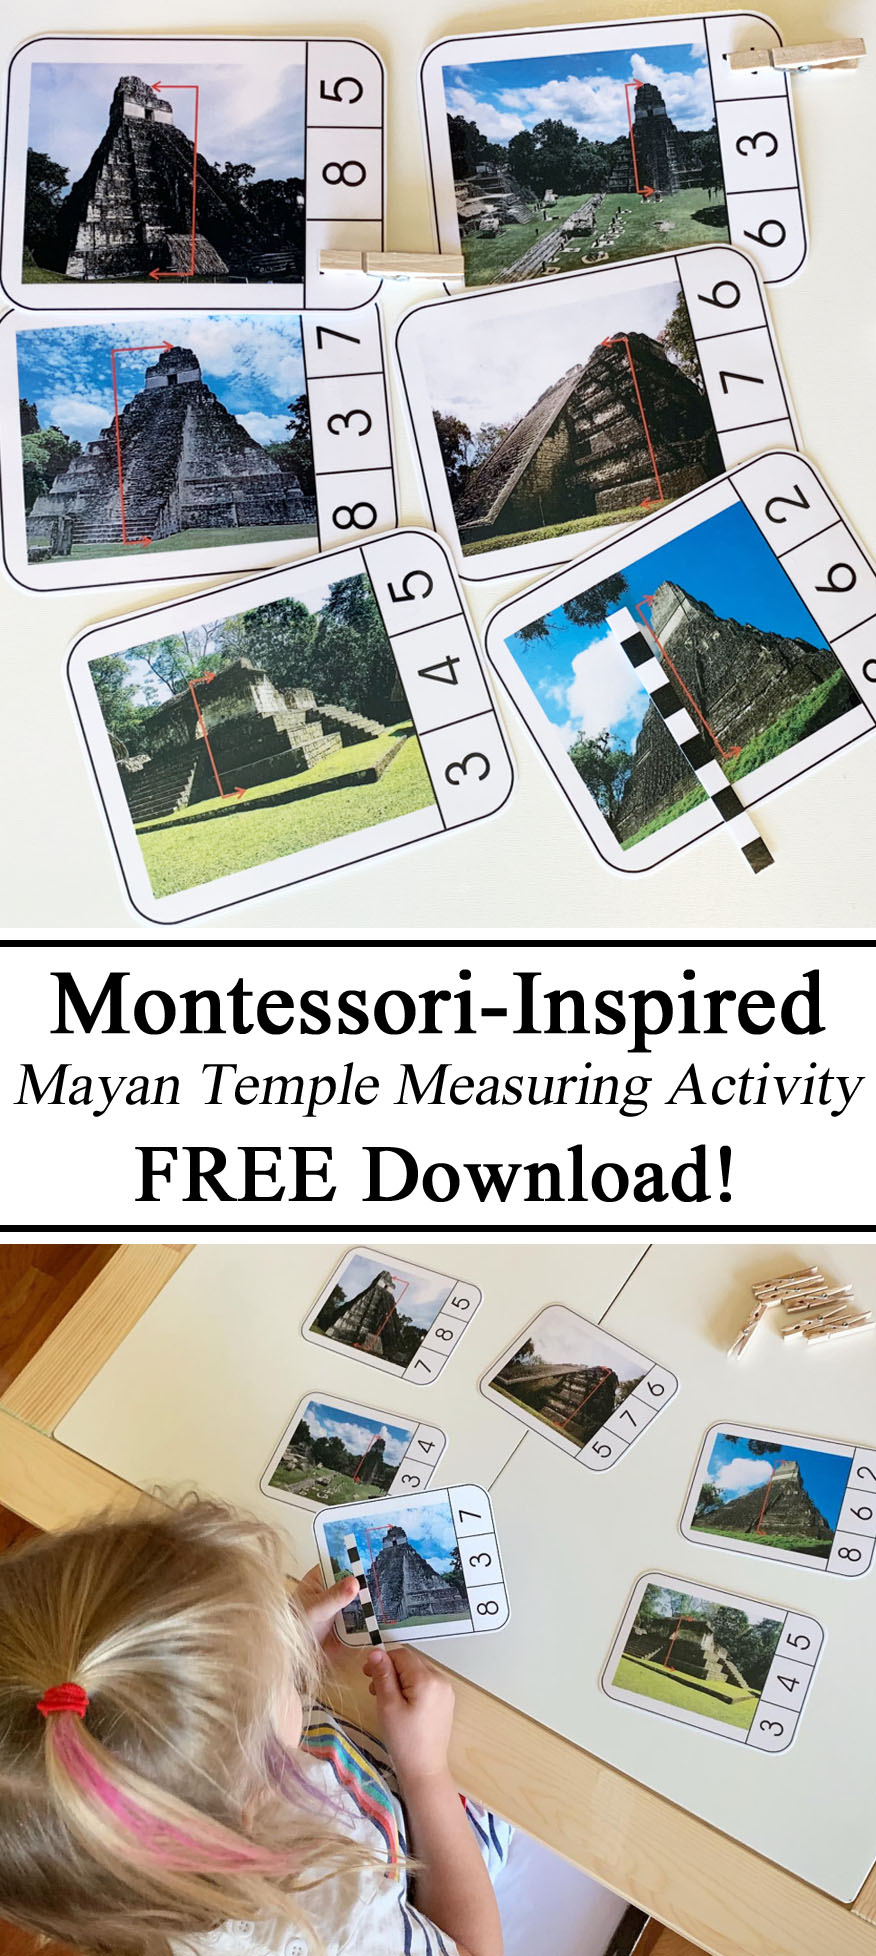 Maya Mayan Temple Montessori Inspired Pinning Cards Clothespins Free Download Printables Measuring Activity Activities Early Counting Math Mathamatics PreK Kindergarten Preschool STEM Challenge Education Learn Learning Hands on Homeschool Homeschool Units of Measurement Numbers